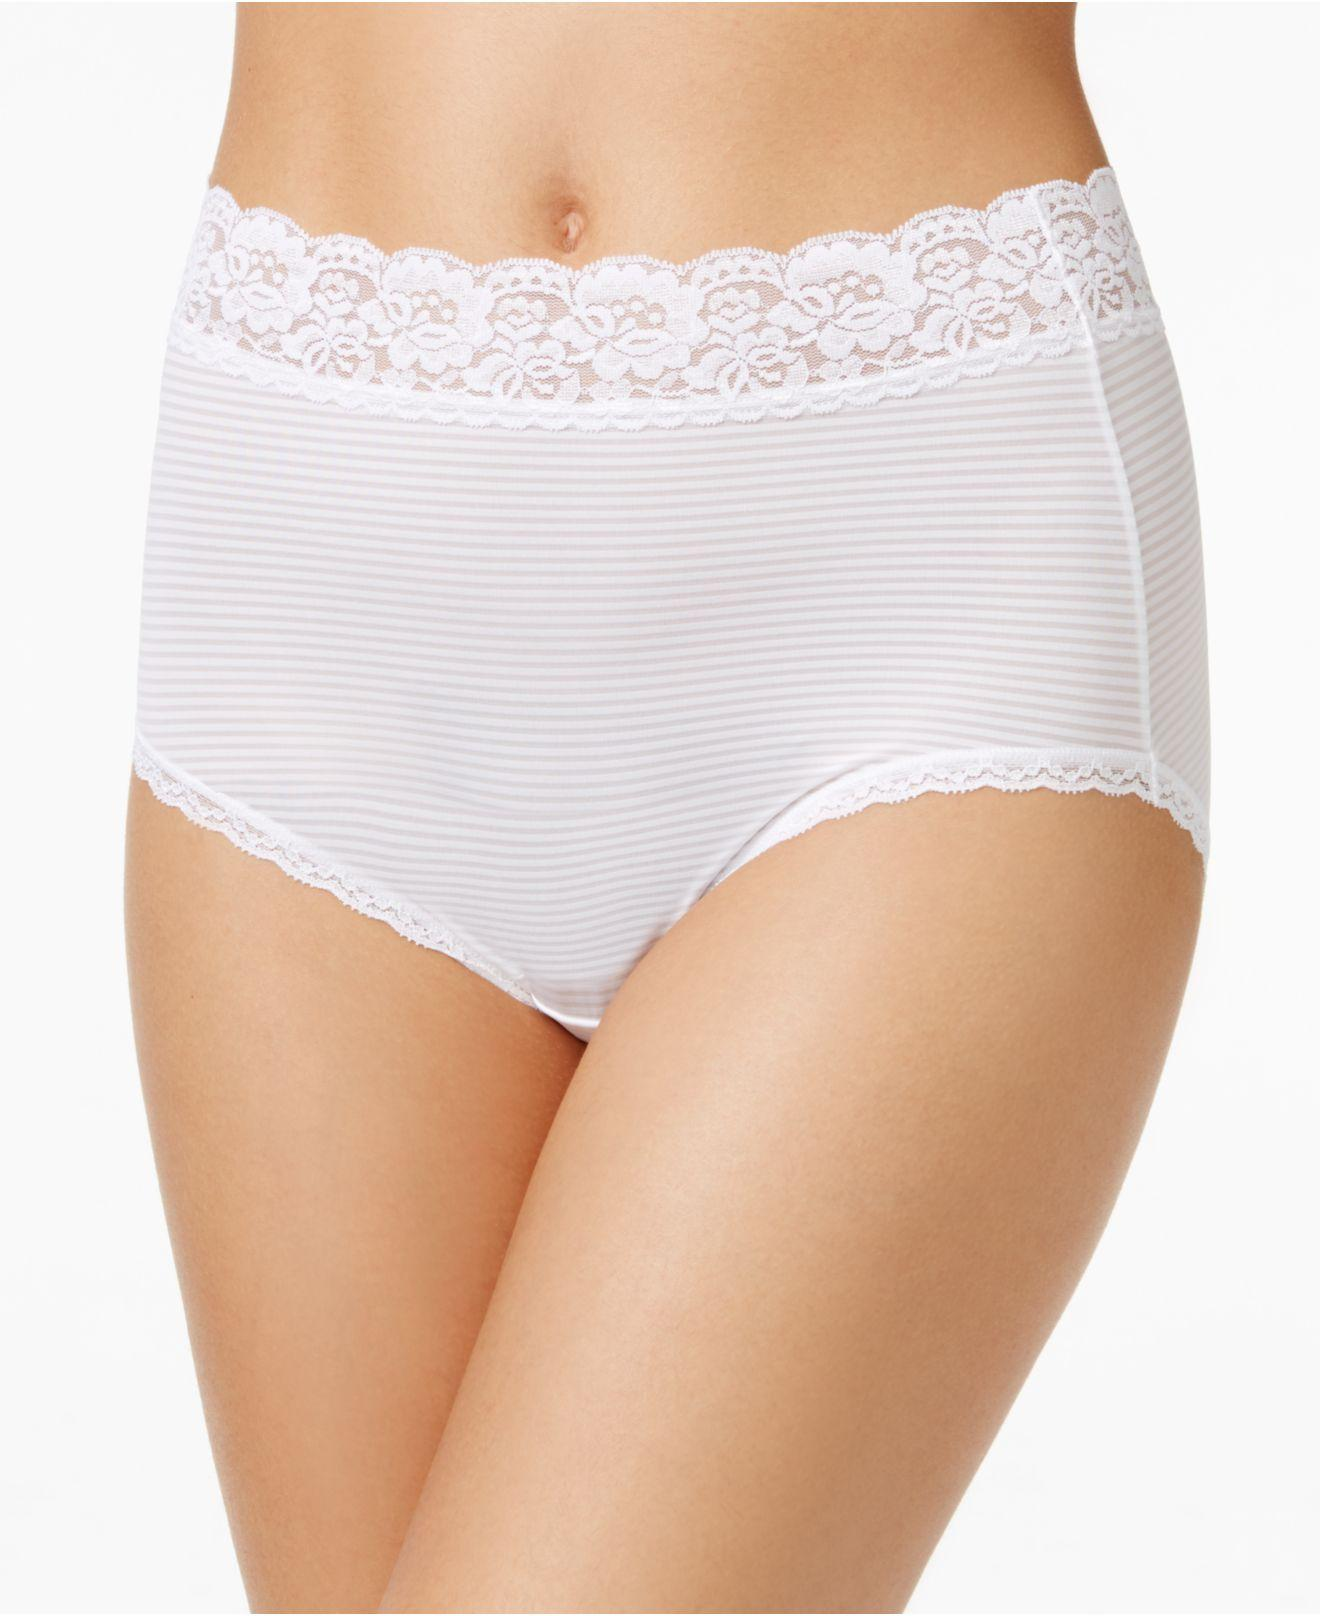 215baa198ef Lyst - Vanity Fair Flattering Lace Stretch Brief 13281, Also ...